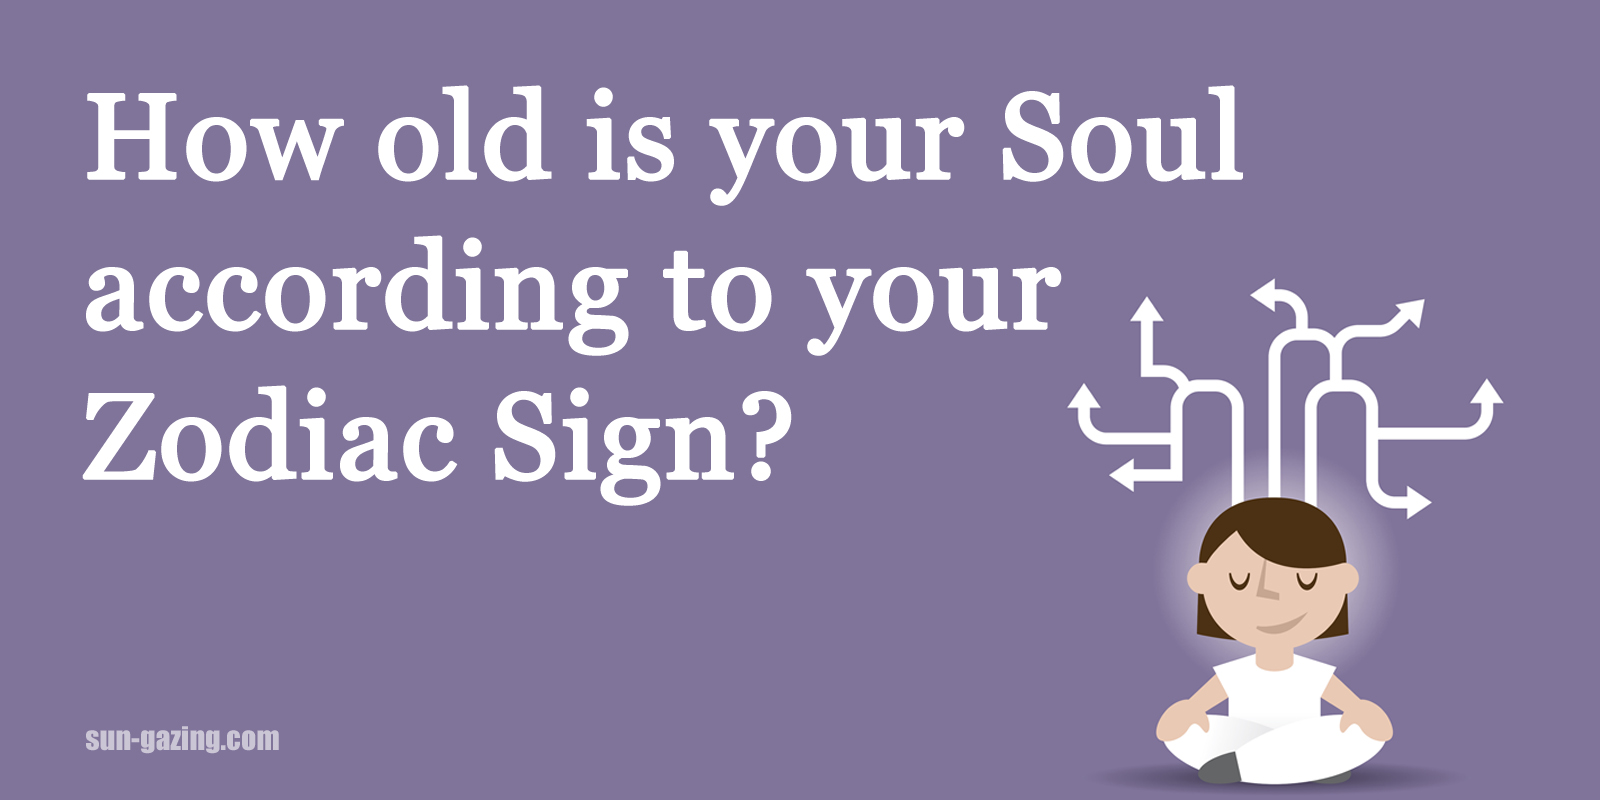 How old is your soul according to your zodiac sign 7fff88f7f78f78ff87f8f8f8f87f biocorpaavc Images